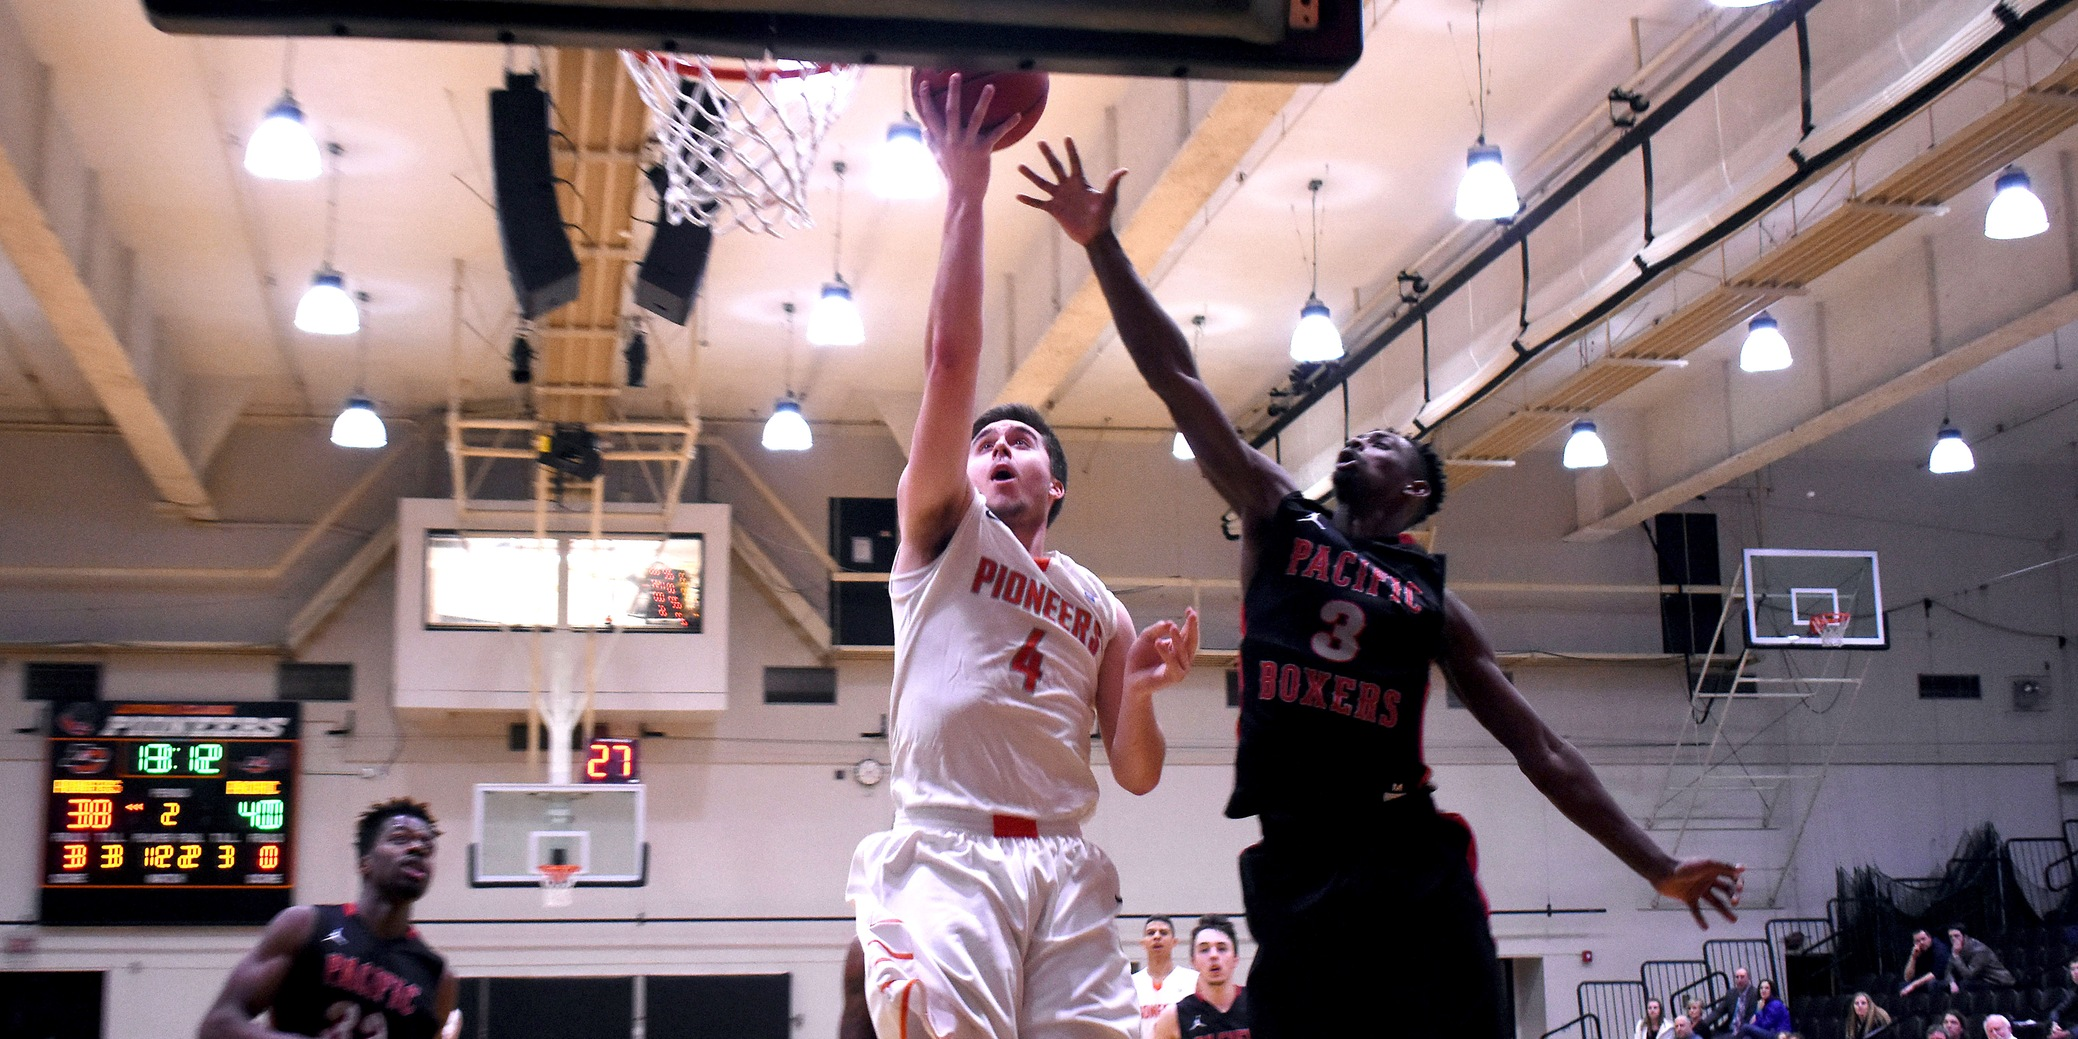 Despite a second-half surge, Pioneers defeated in final home game